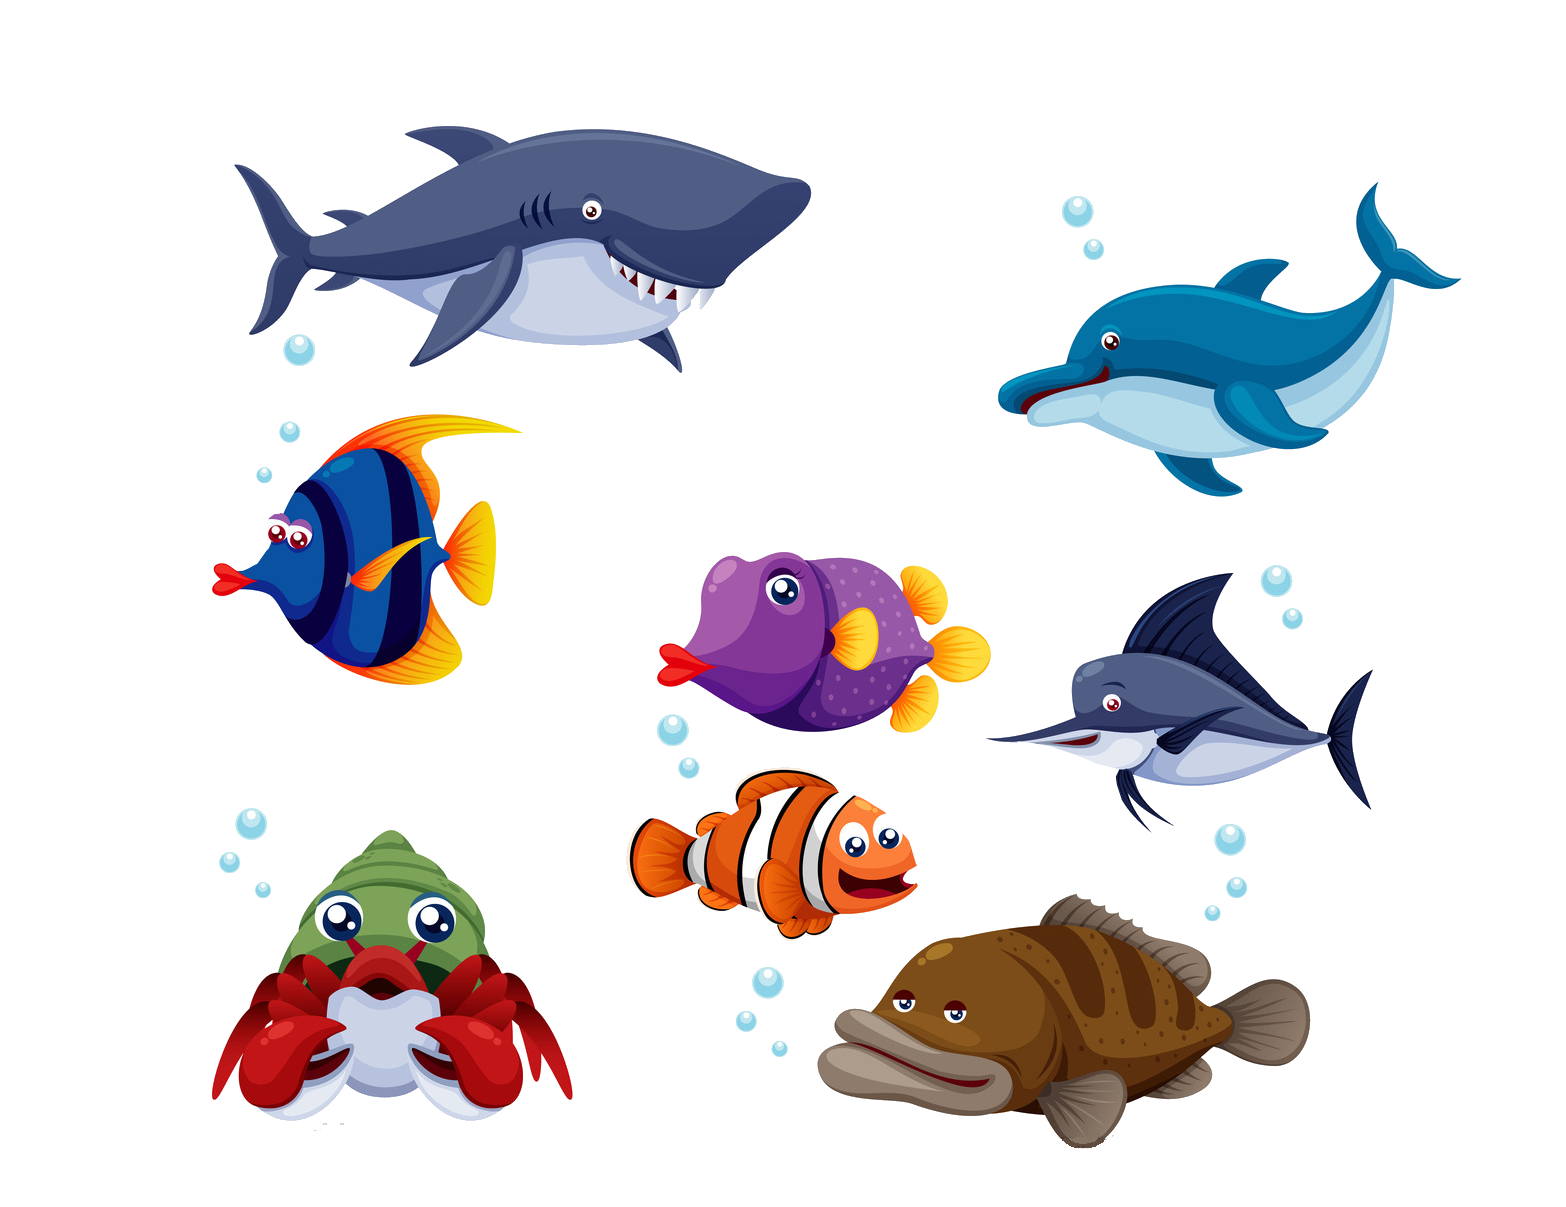 Free fish cartoon clipart picture transparent Fish Cartoon Clip art - Cartoon fish 1566*1207 transprent Png Free ... picture transparent